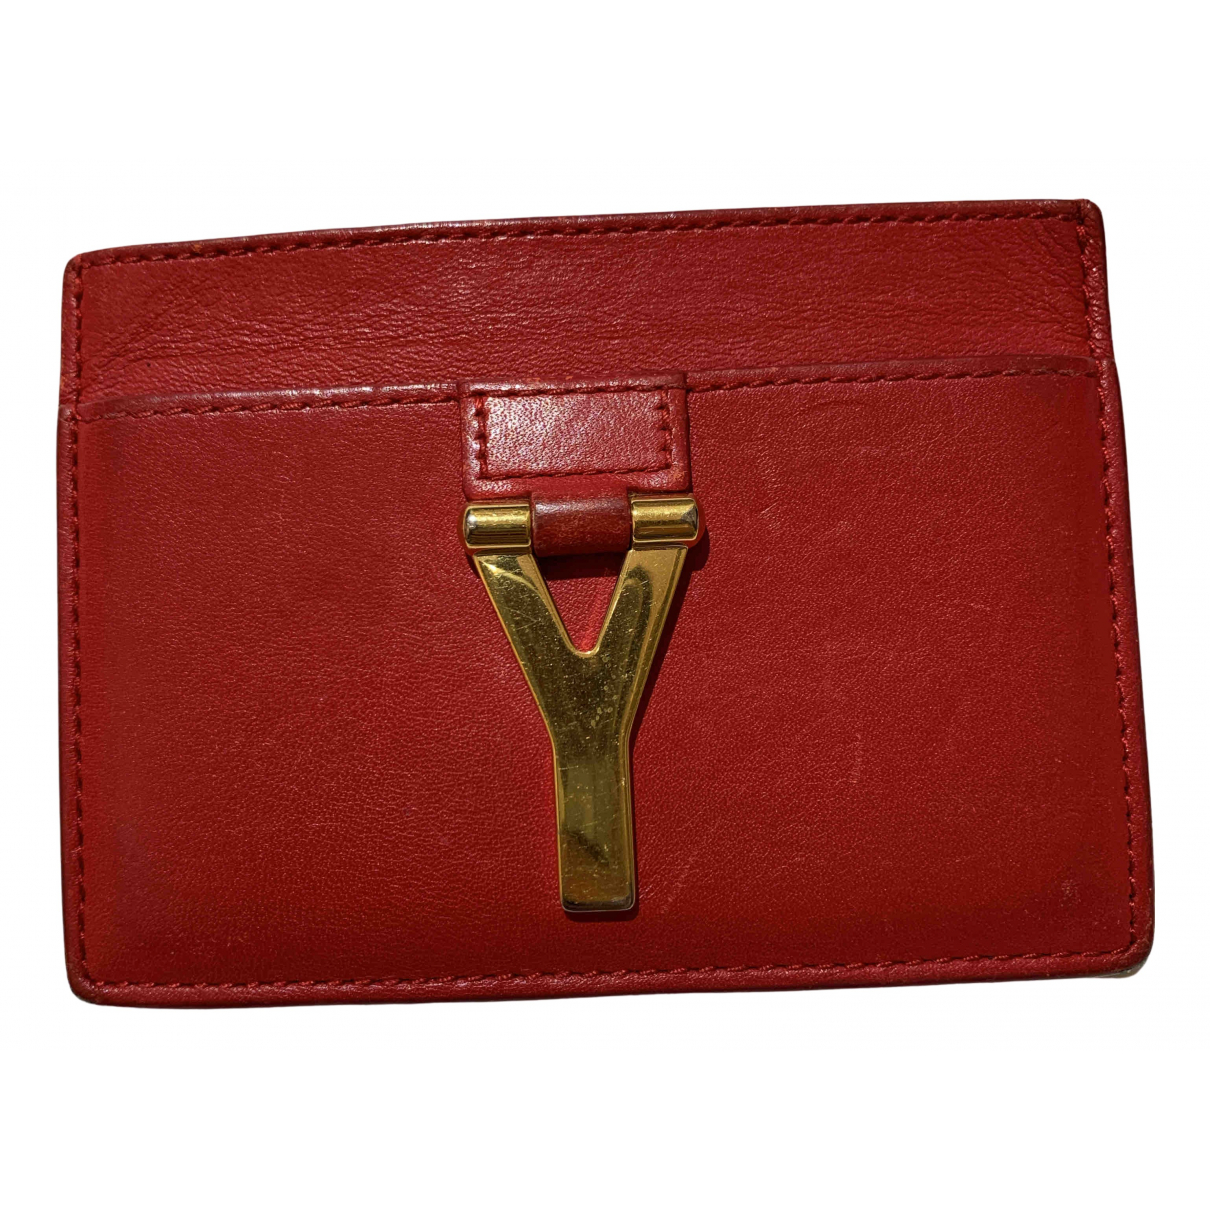 Yves Saint Laurent N Red Leather Purses, wallet & cases for Women N